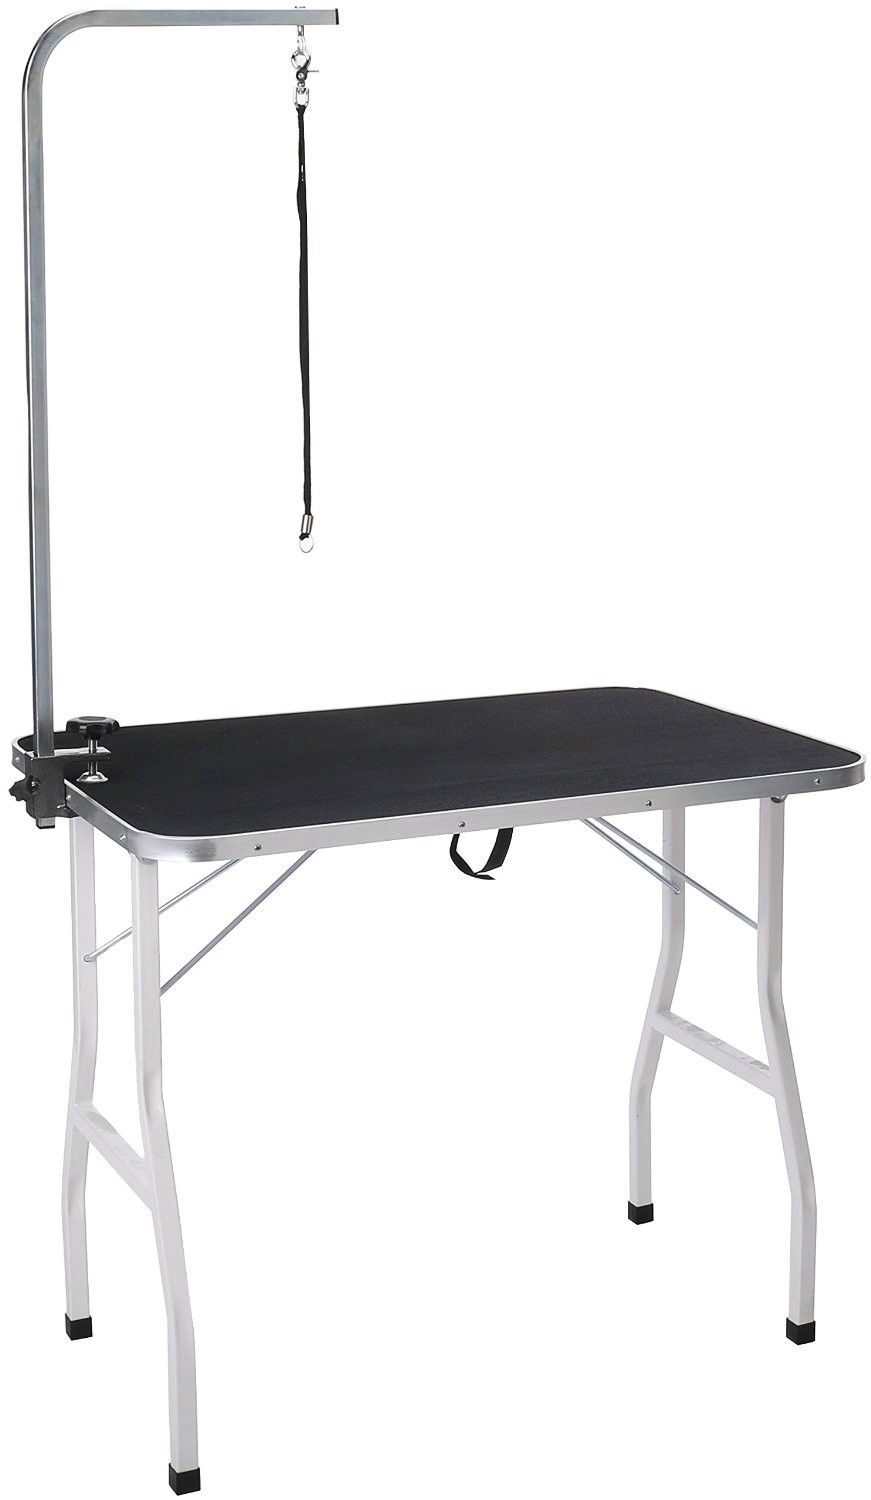 Grooming Table For Pet Dog Or Cat 36 Inch Foldable Portable